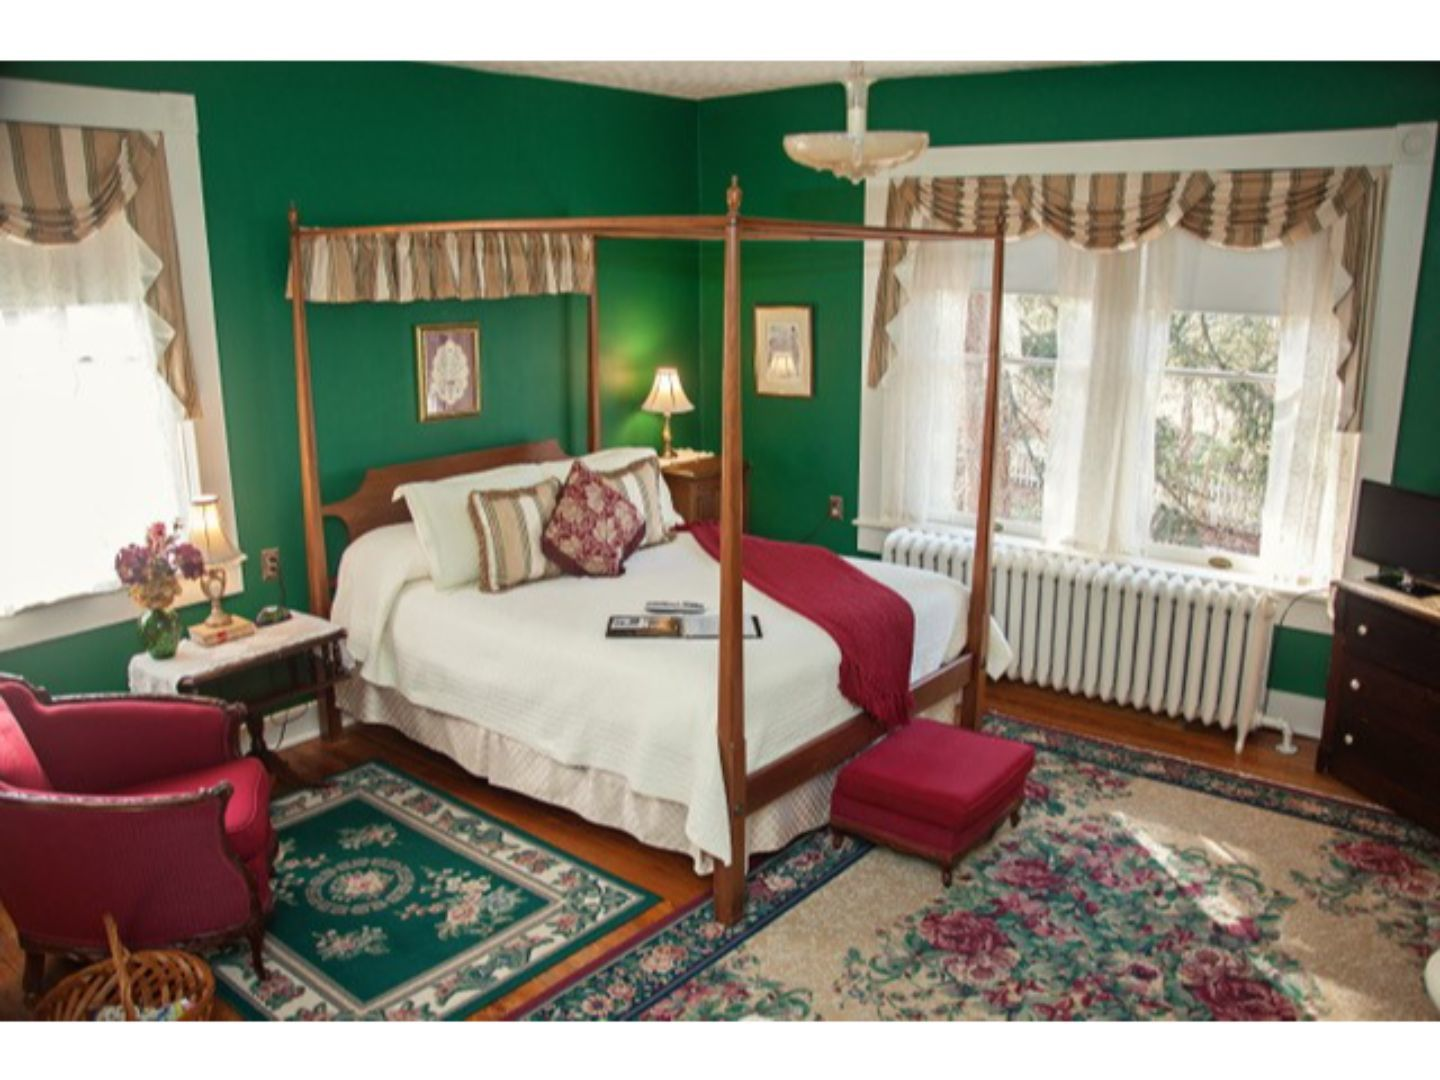 A bedroom with a red rug at The Carriage Inn Bed and Breakfast.